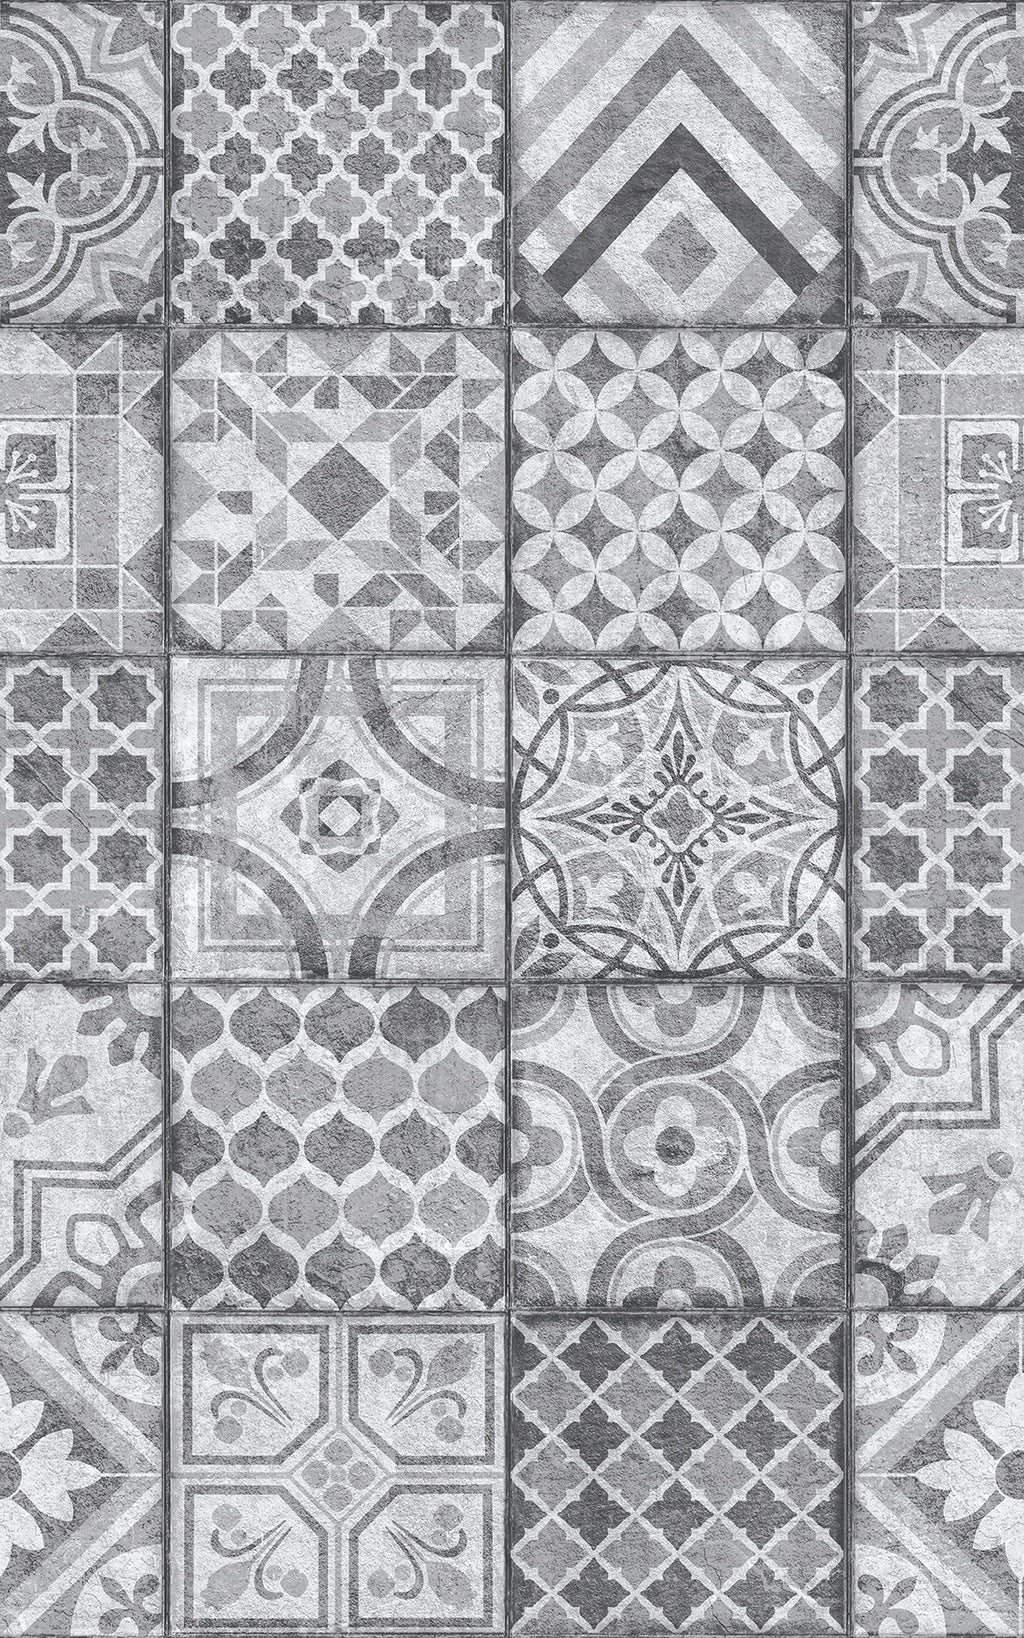 Visbi Adhesive Film-Moroccan style grey tile with various designs in each tile.